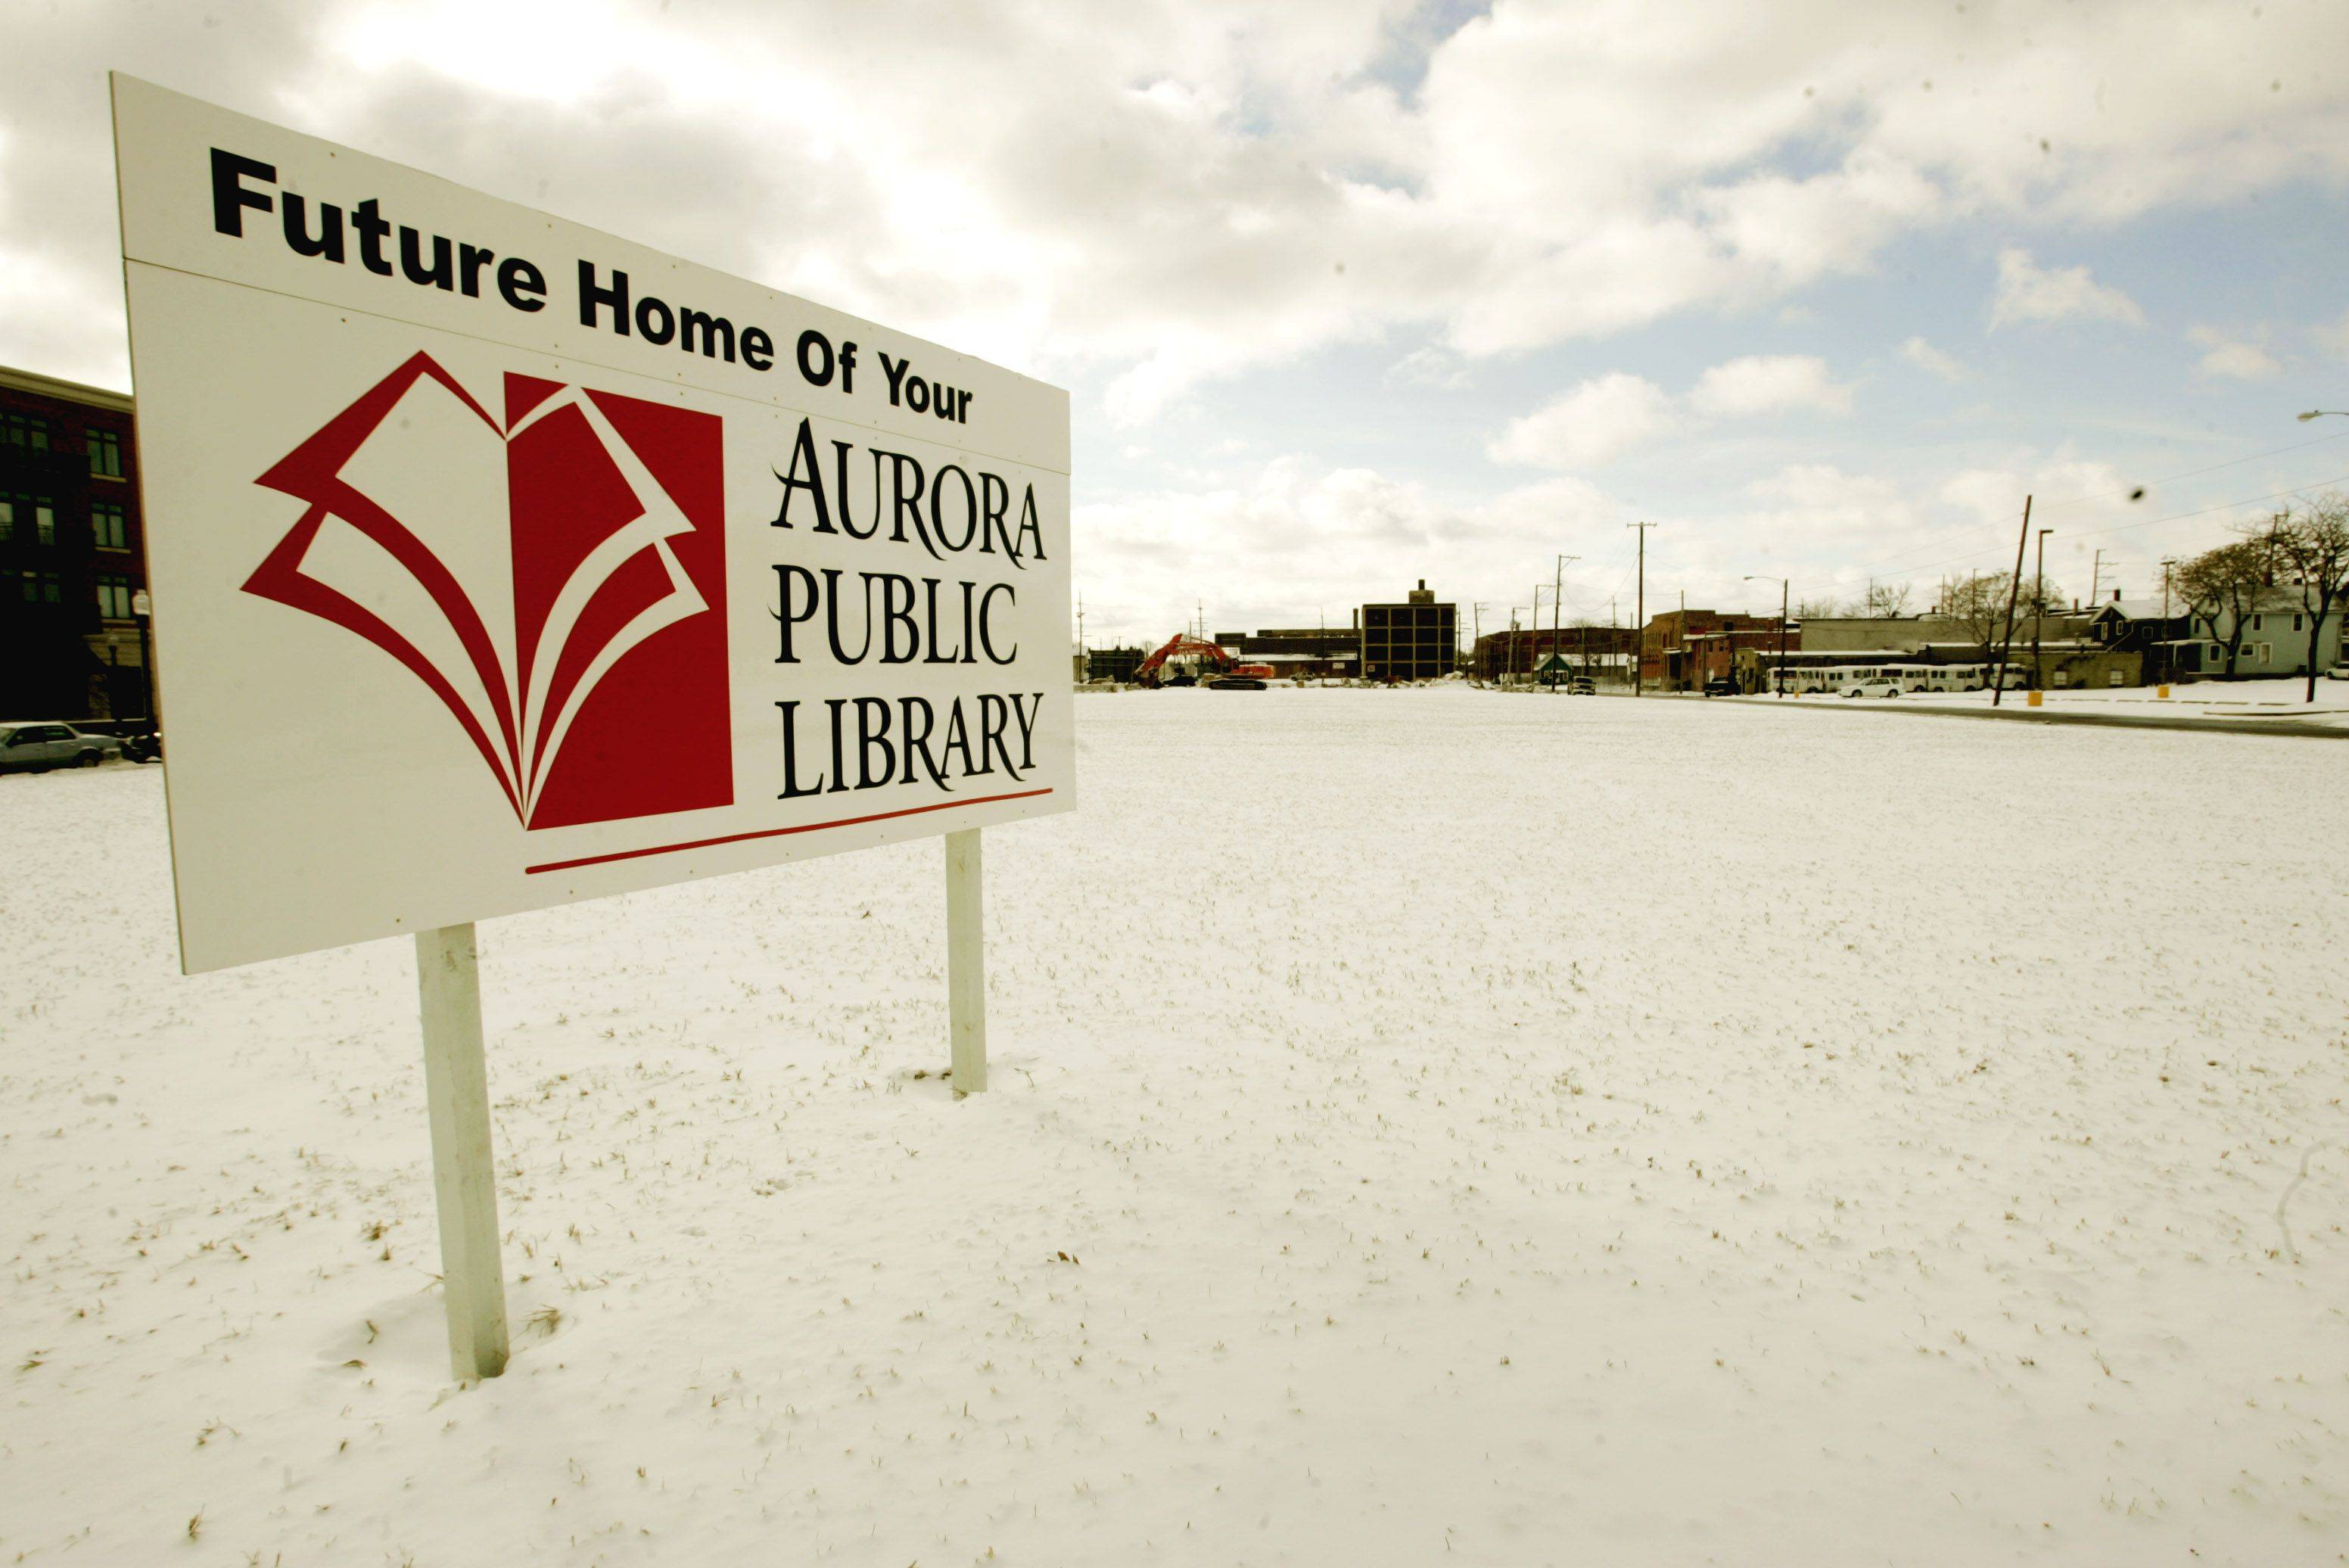 Schematic designs are almost complete for the new Aurora Public Library building set to be constructed in the next several years at the southwest corner of River and Benton streets.